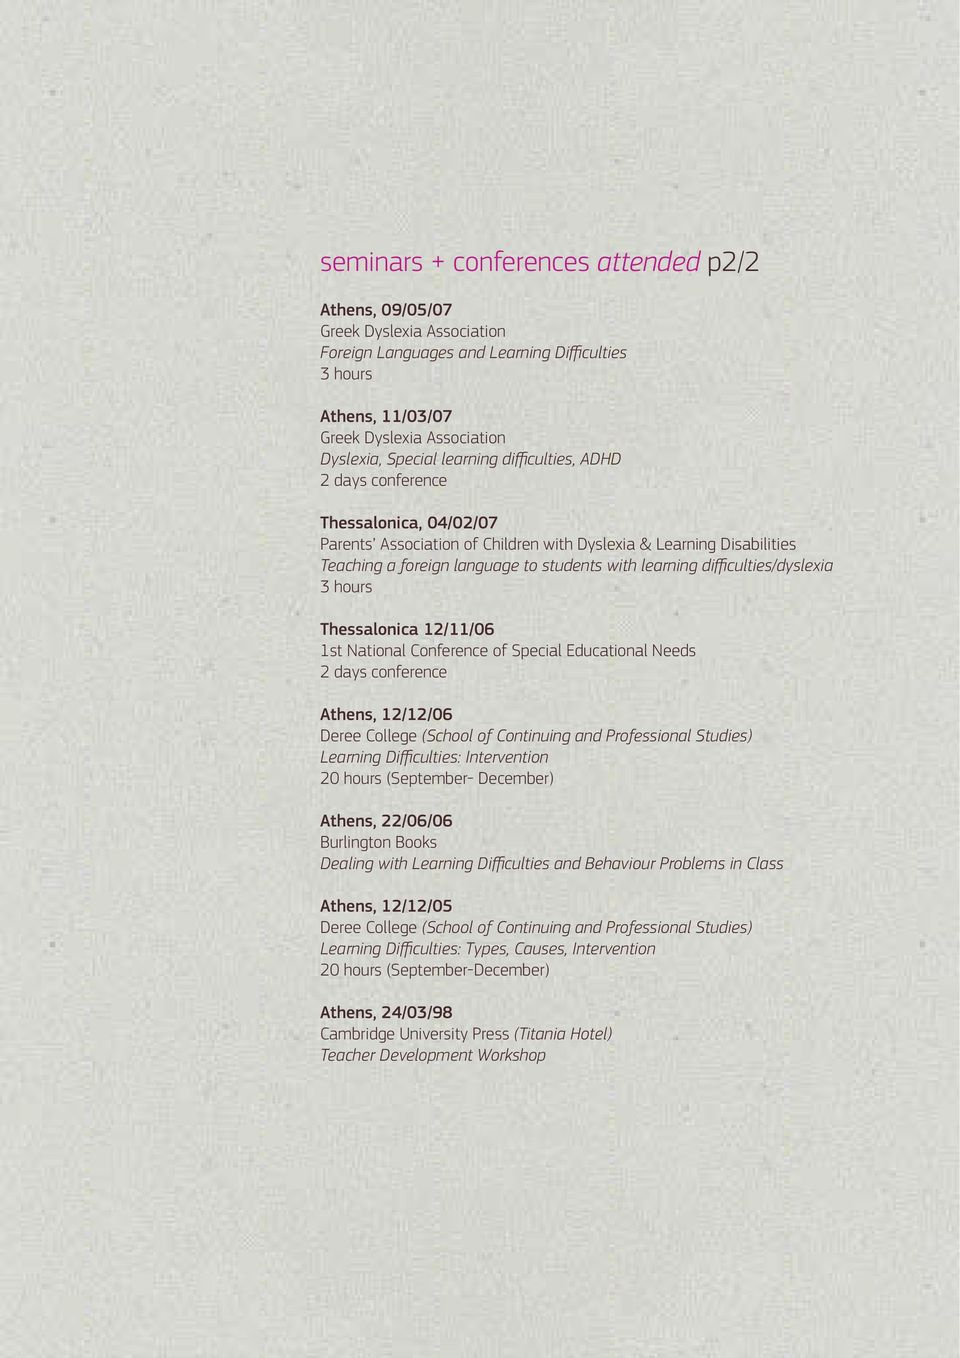 difficulties/dyslexia 3 hours Thessalonica 12/11/06 1st National Conference of Special Educational Needs 2 days conference Athens, 12/12/06 Deree College (School of Continuing and Professional